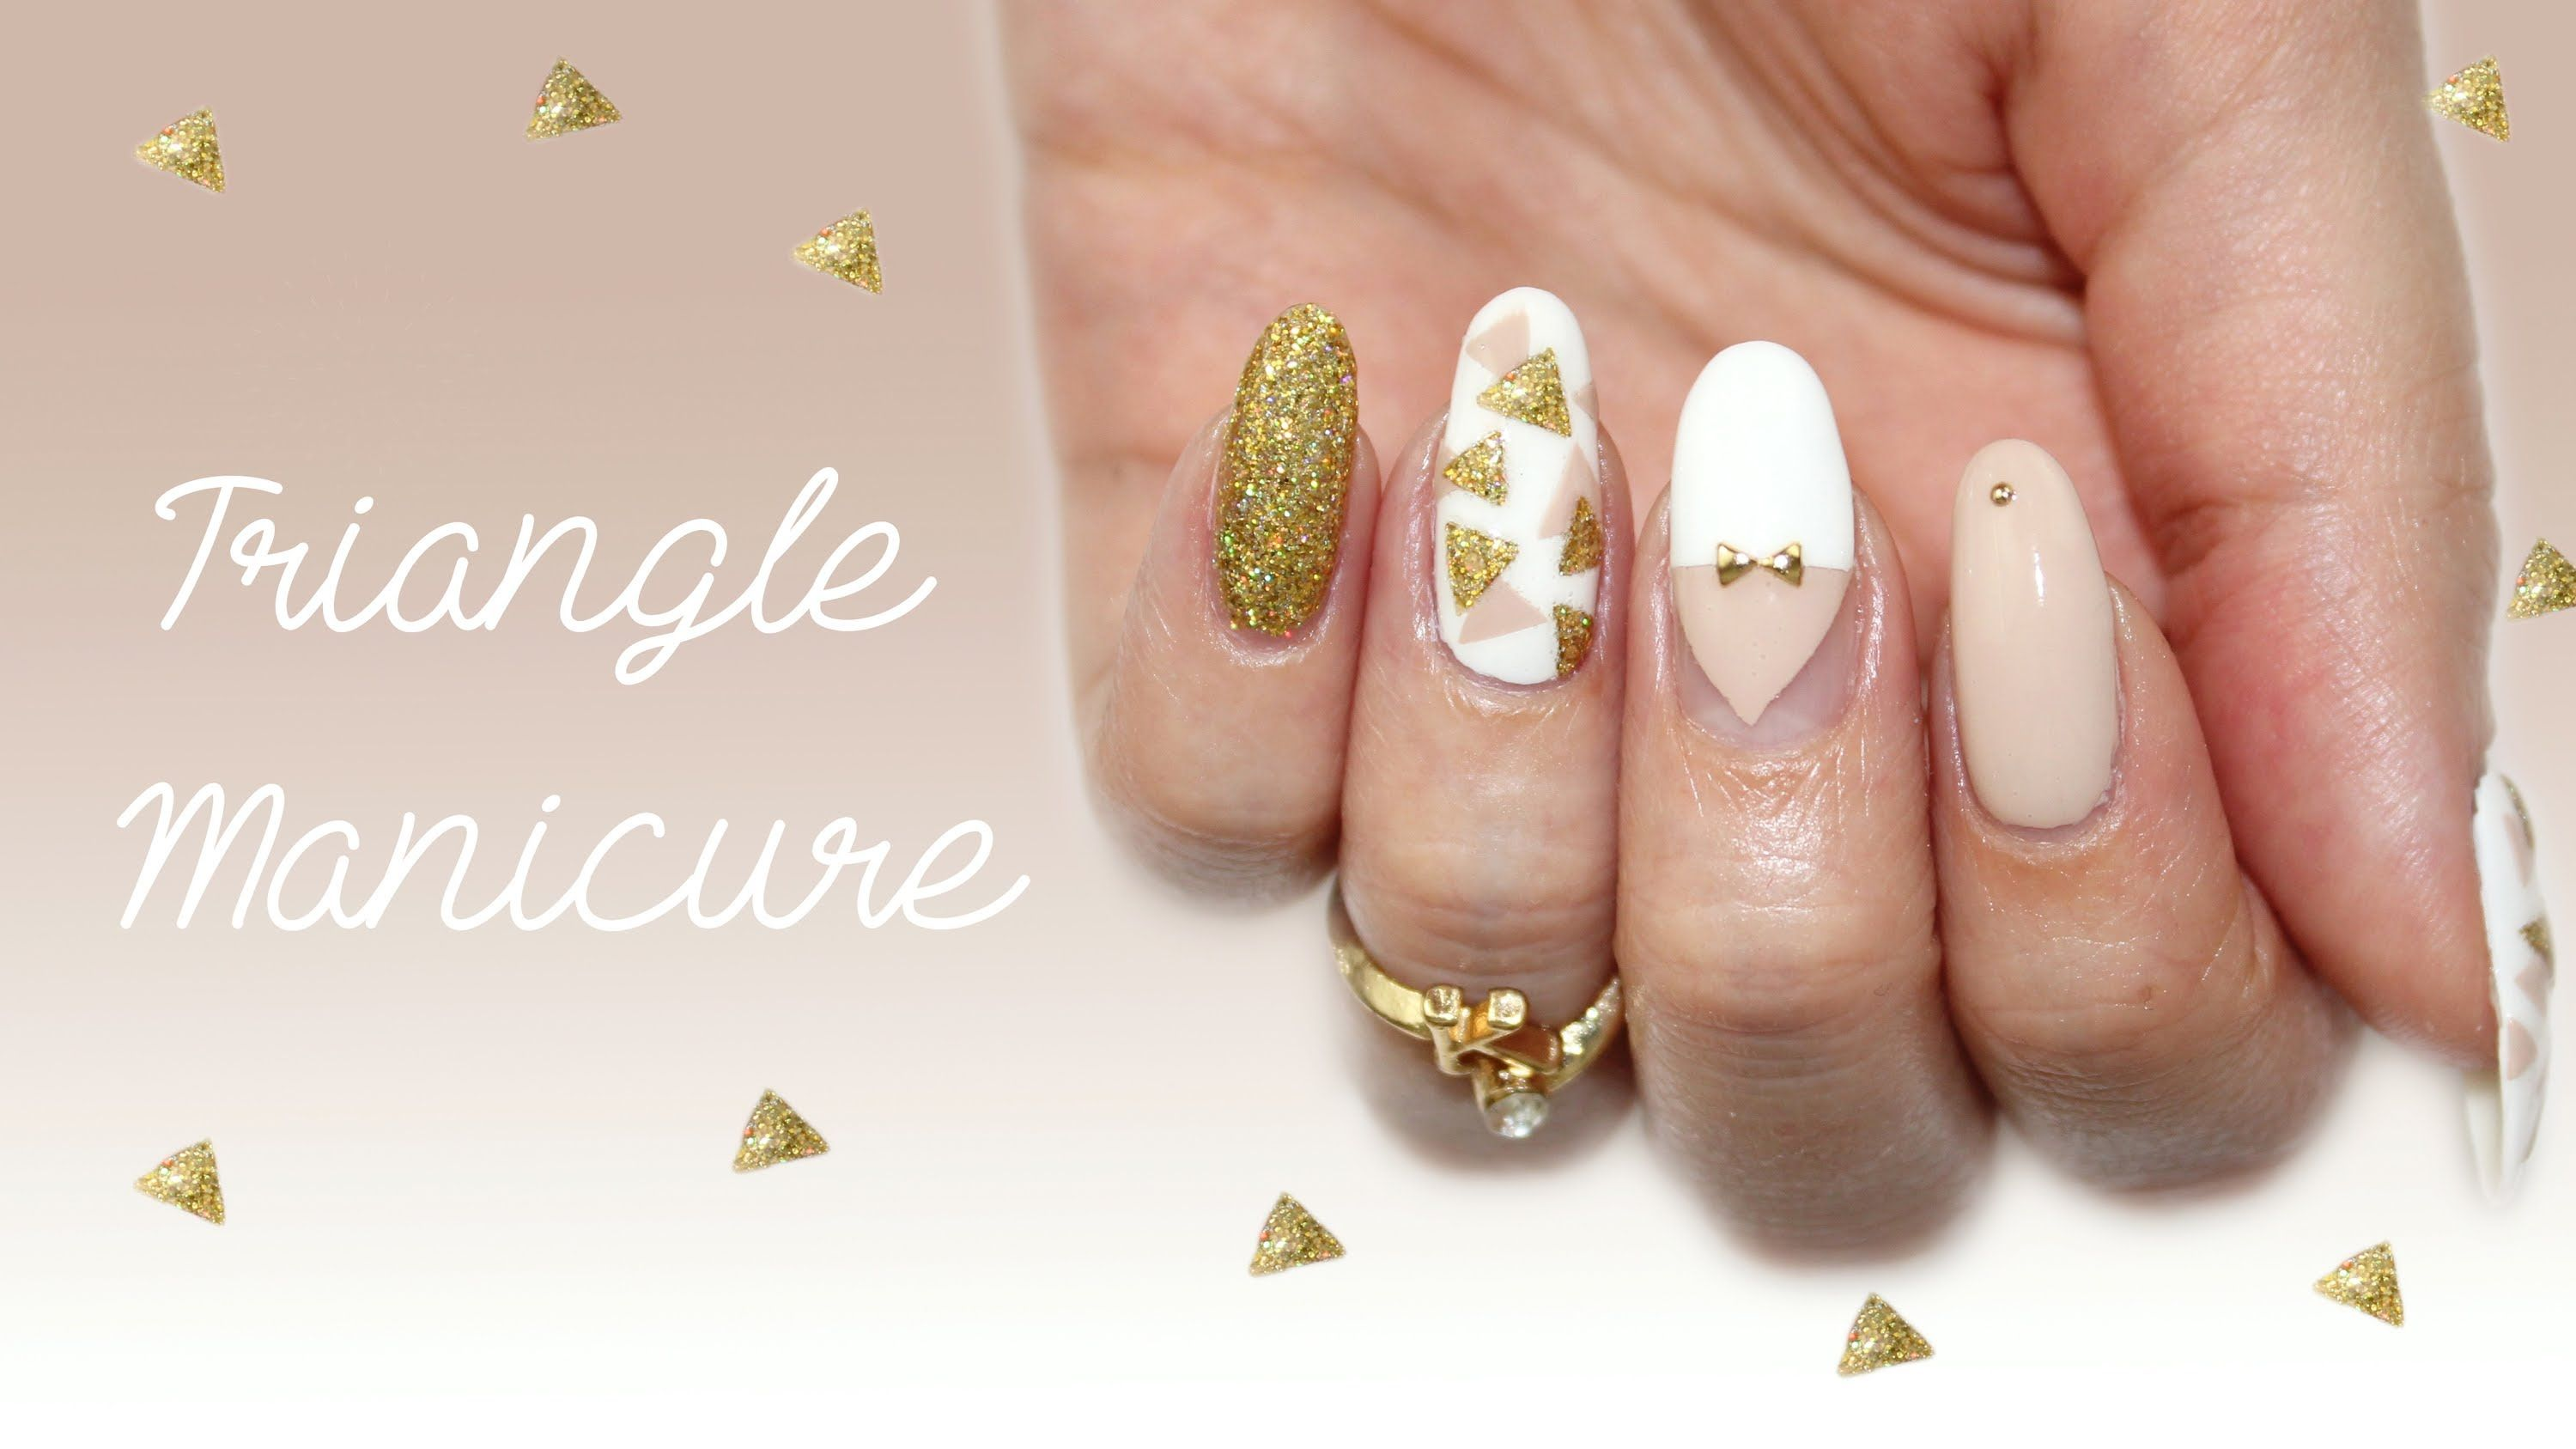 Triangle Nail Art | Spring 2014 ♡ | Nail Designs Tutorials ...